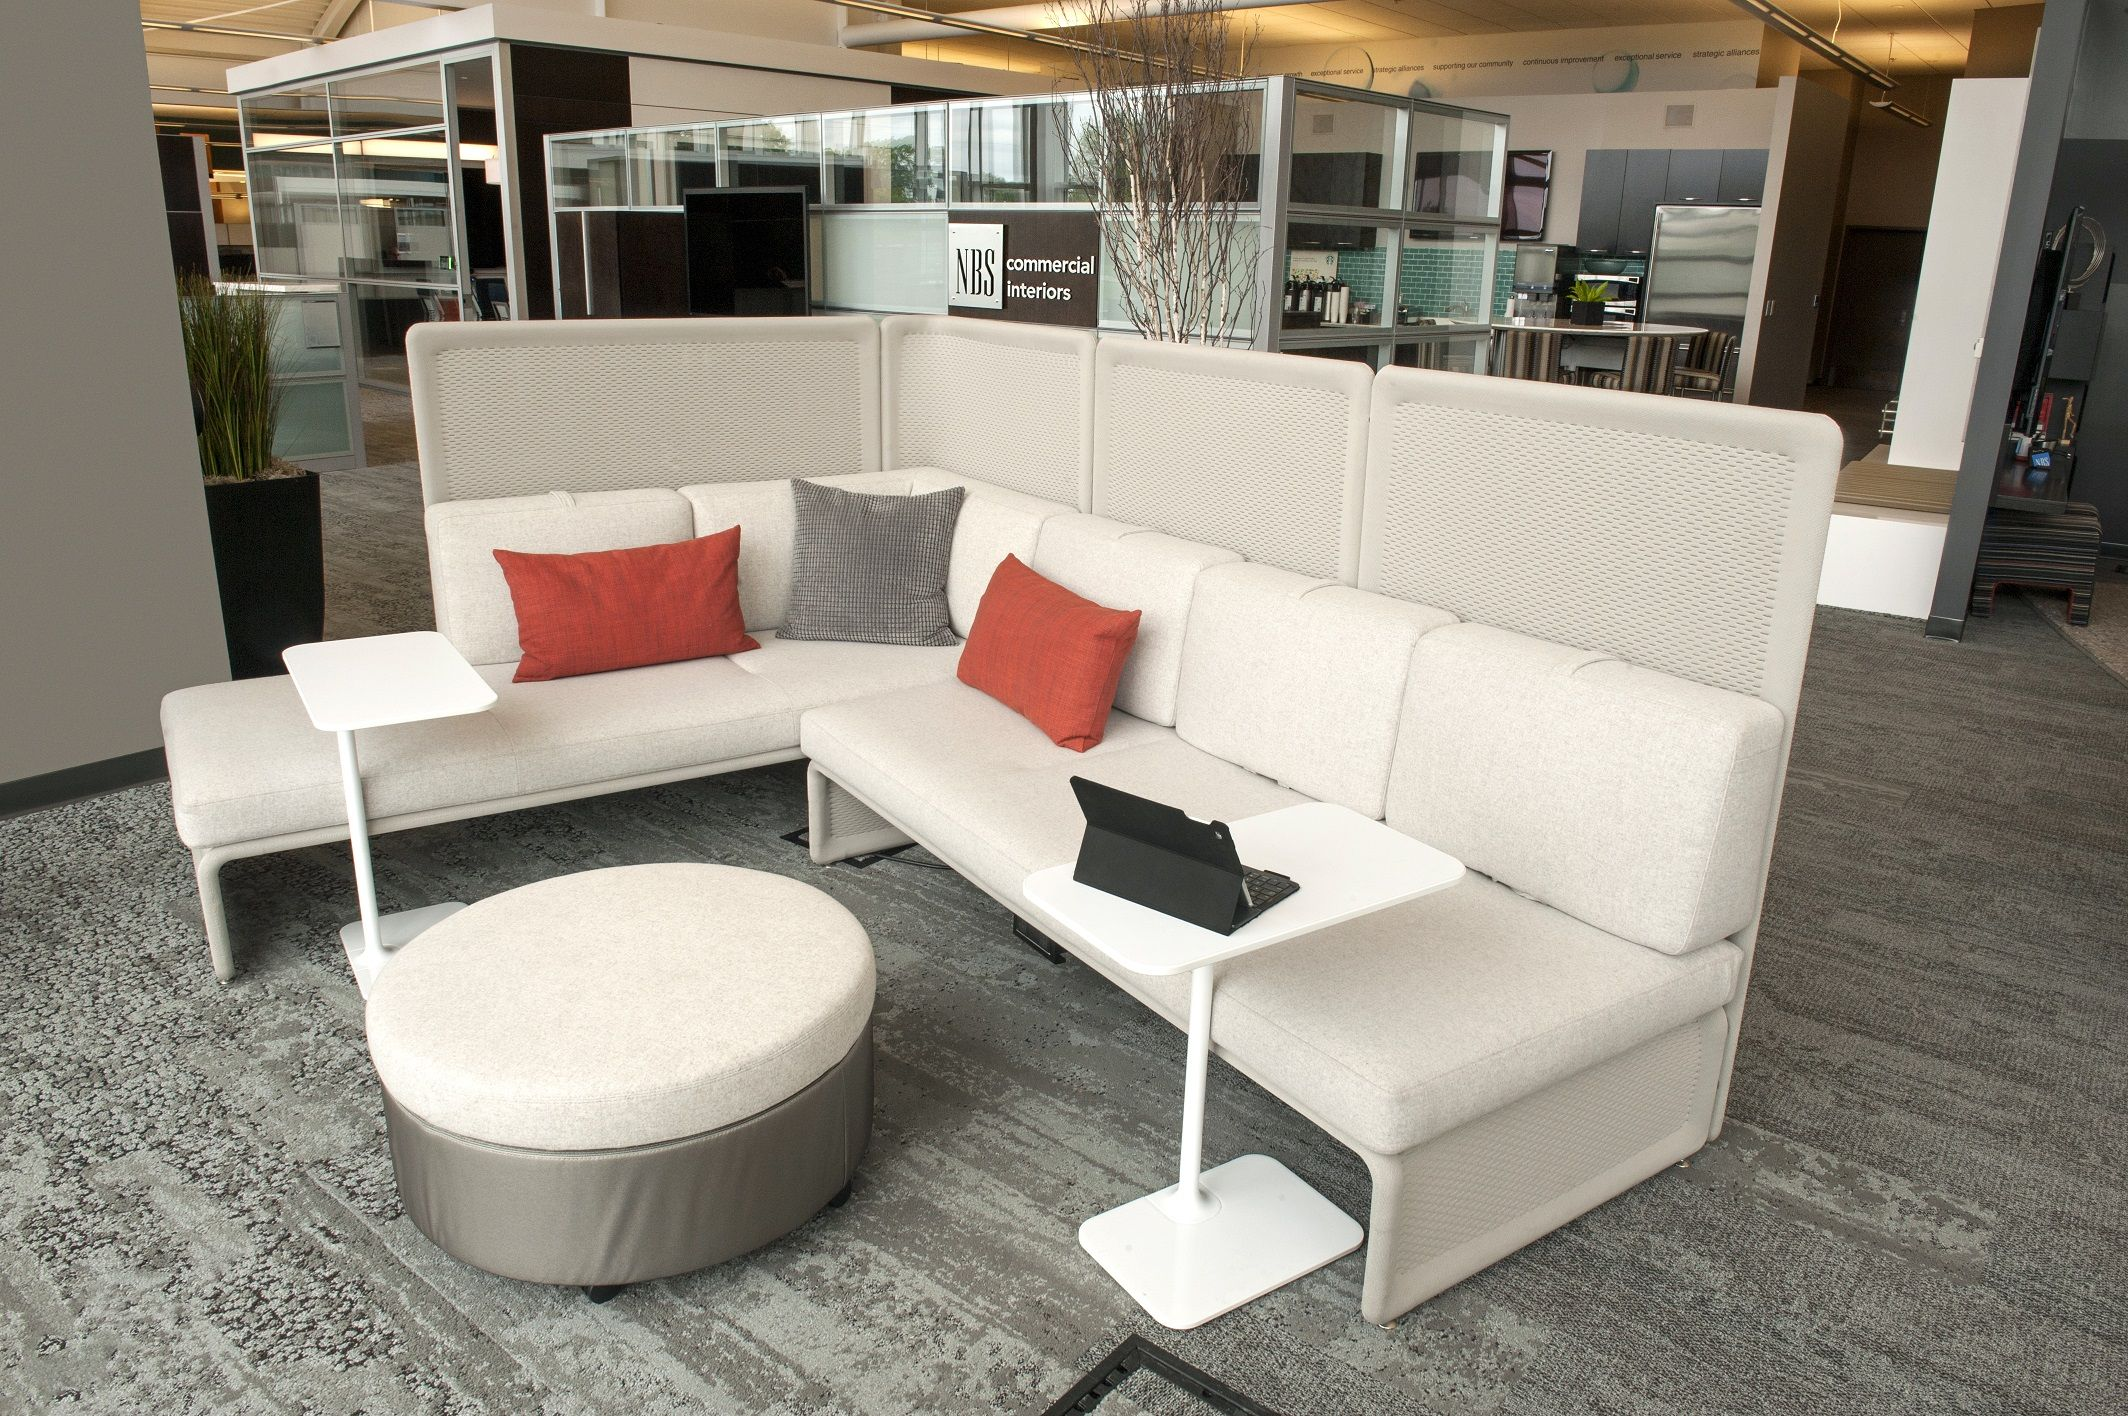 Coalesse Lagunitas Lounge with personal tables and Evaneau ottoman